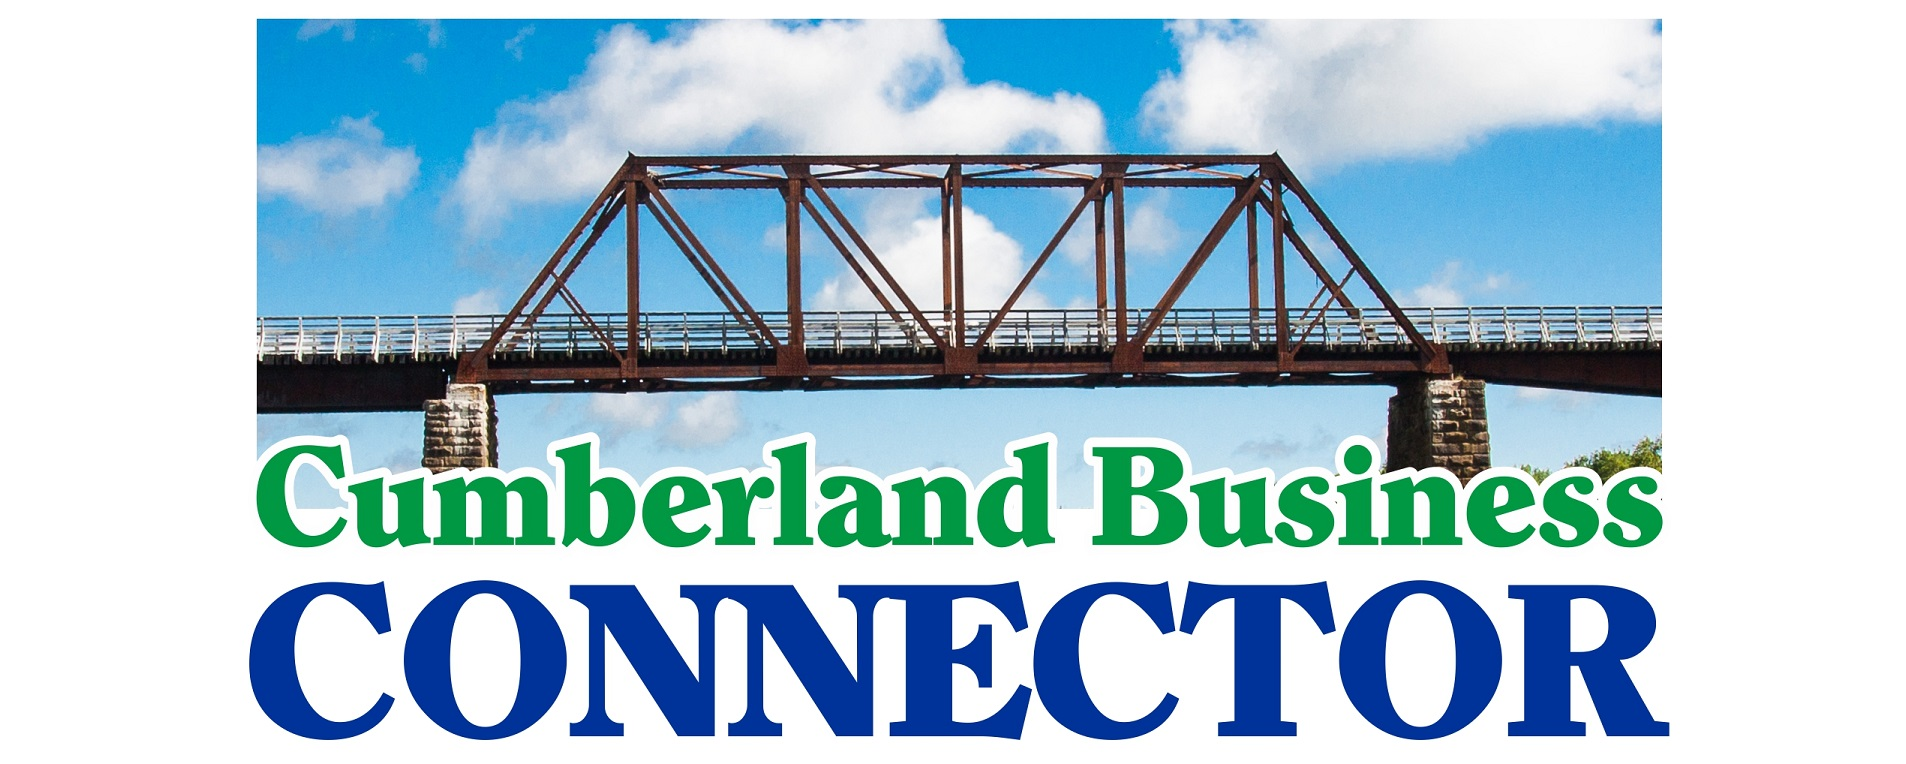 Cumberland Business Connector Logo.jpg